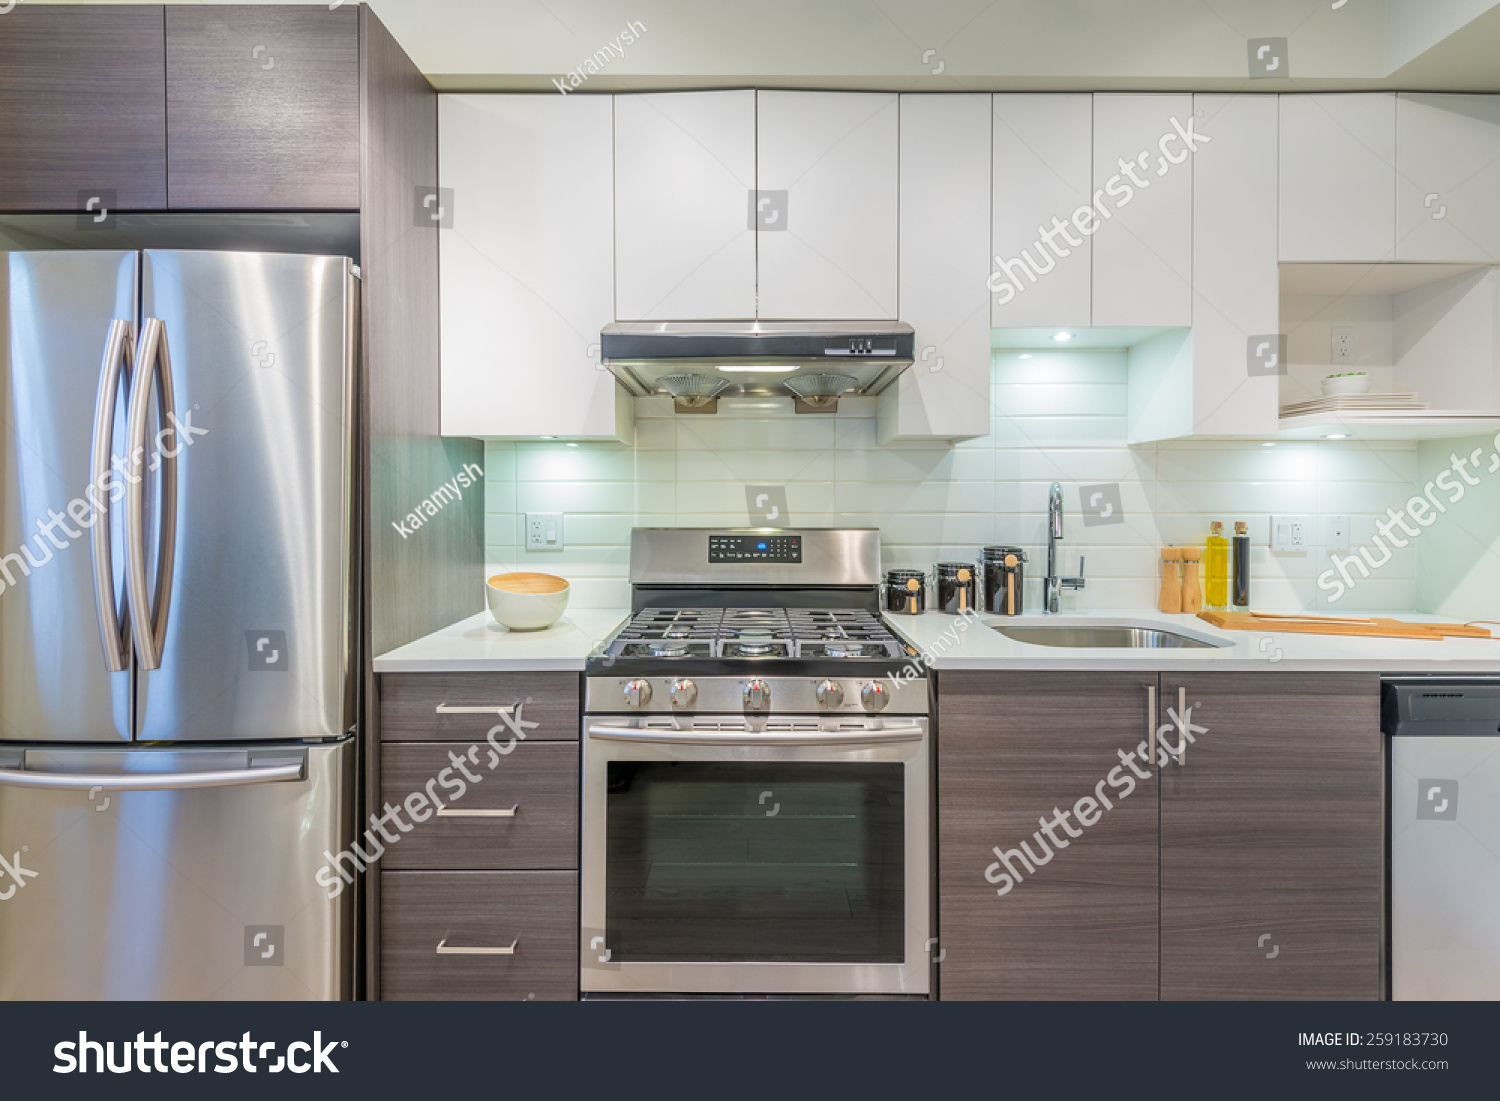 modern bright clean kitchen interior stainless stock photo 259183730 shutterstock. Black Bedroom Furniture Sets. Home Design Ideas